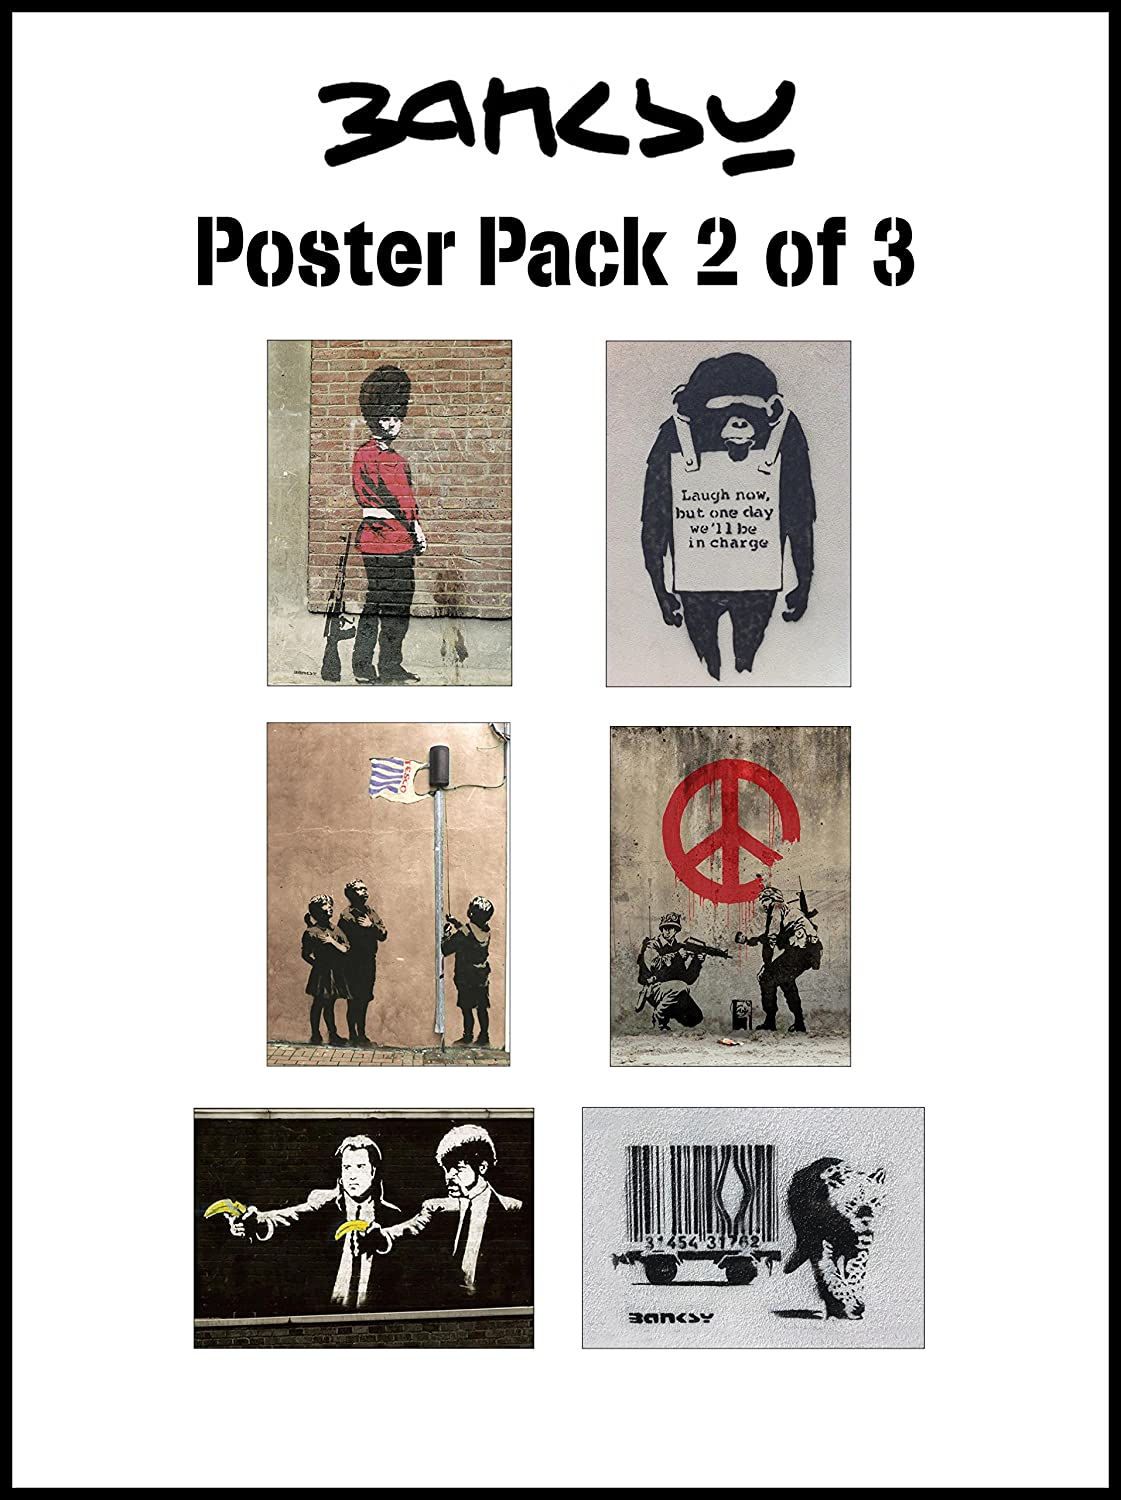 Amazon.com: Banksy Poster Pack 2 of 3 - 6 of Banksys most popular graffiti images - Each poster is A3 (420 x 297 mm): Posters & Prints